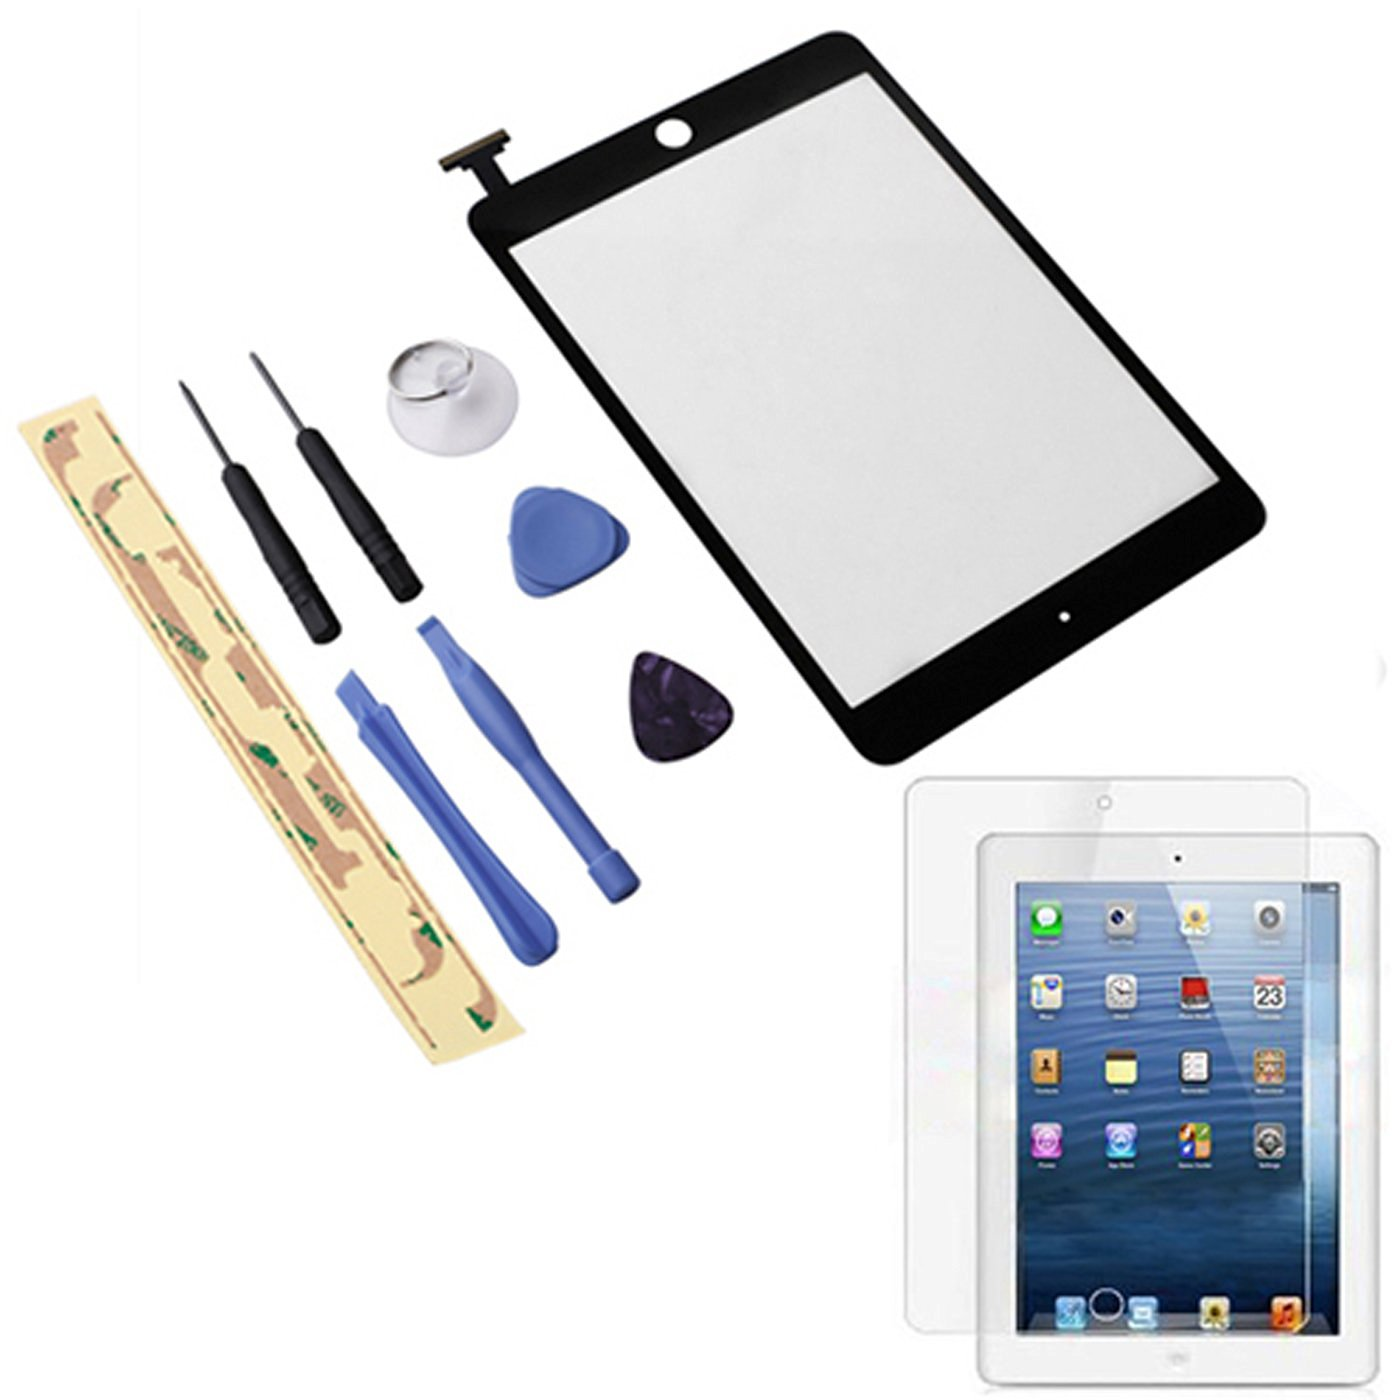 "HDE iPad Mini 7.9"" Digitzer Touch Screen Replacement Parts w/ 7-Piece Tool Kit, Adhesive Tape, & Screen Protector (Black)"